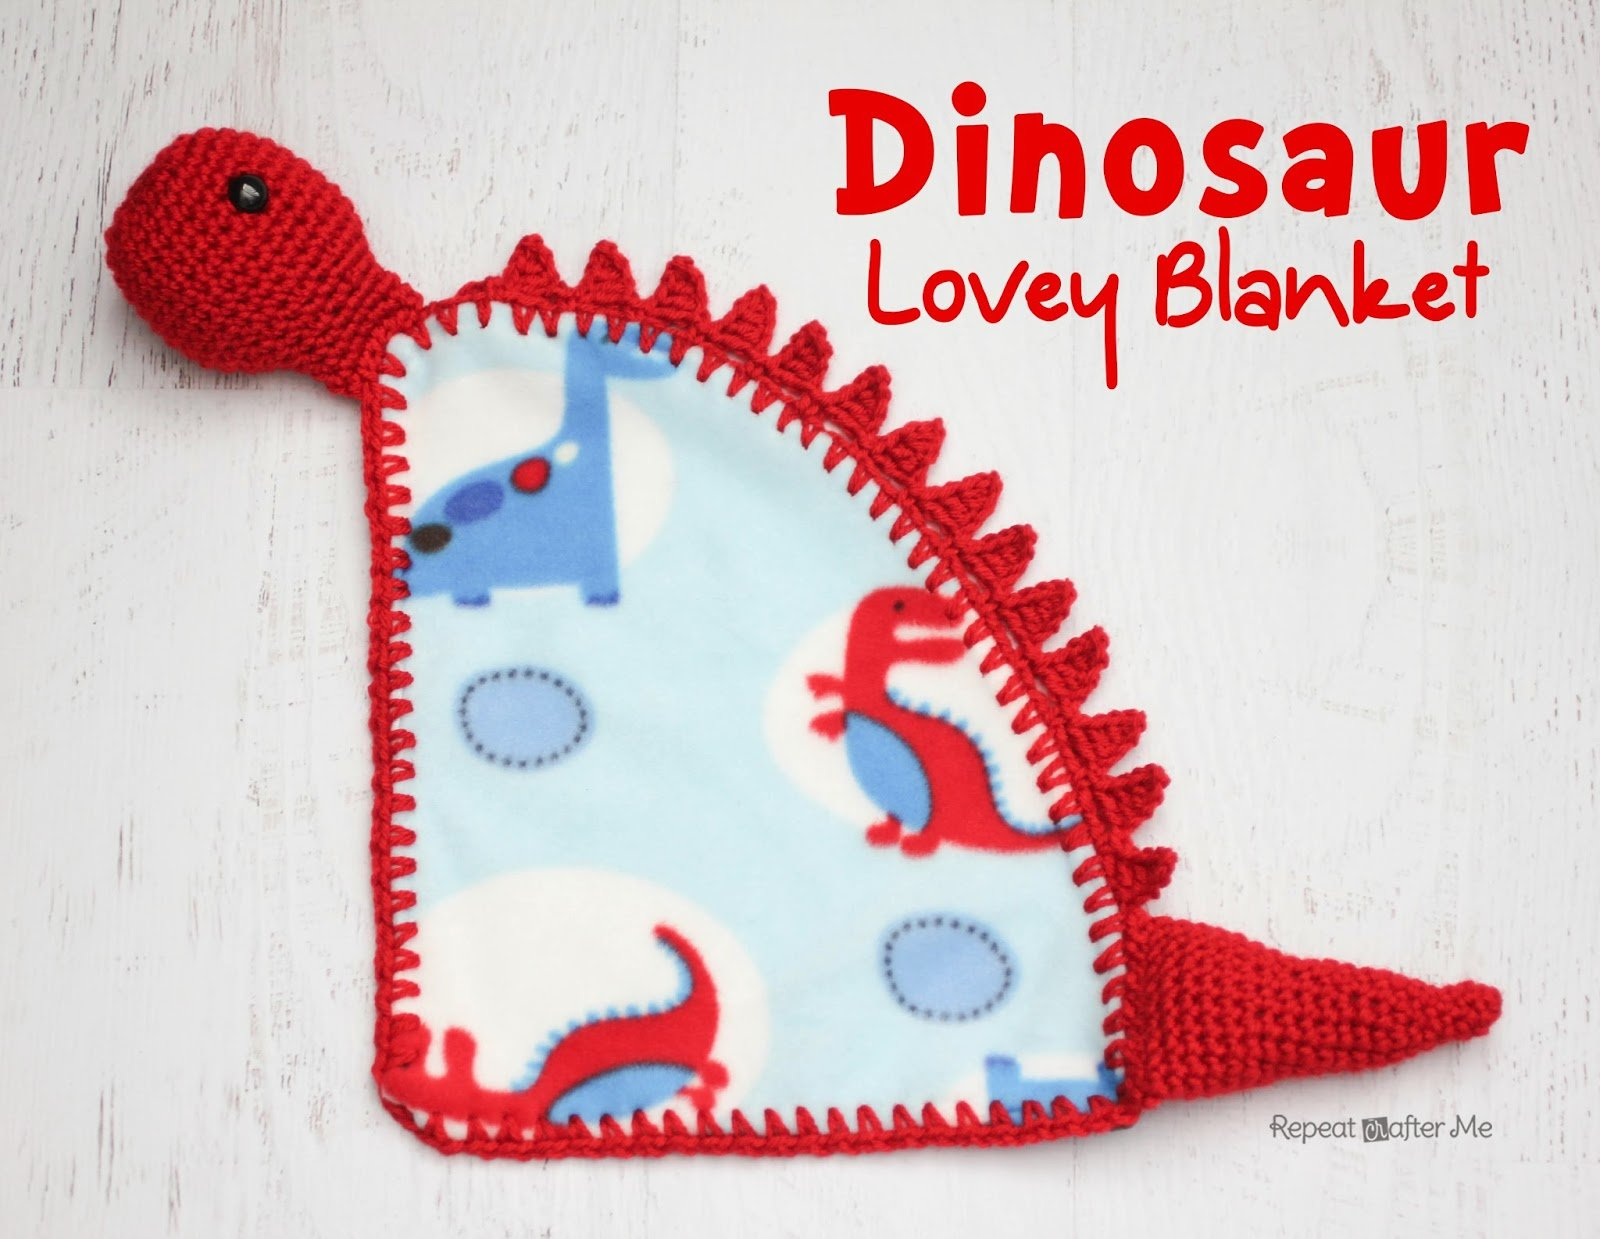 Dinosaur Lovey Blanket by Repeat Crafter Me